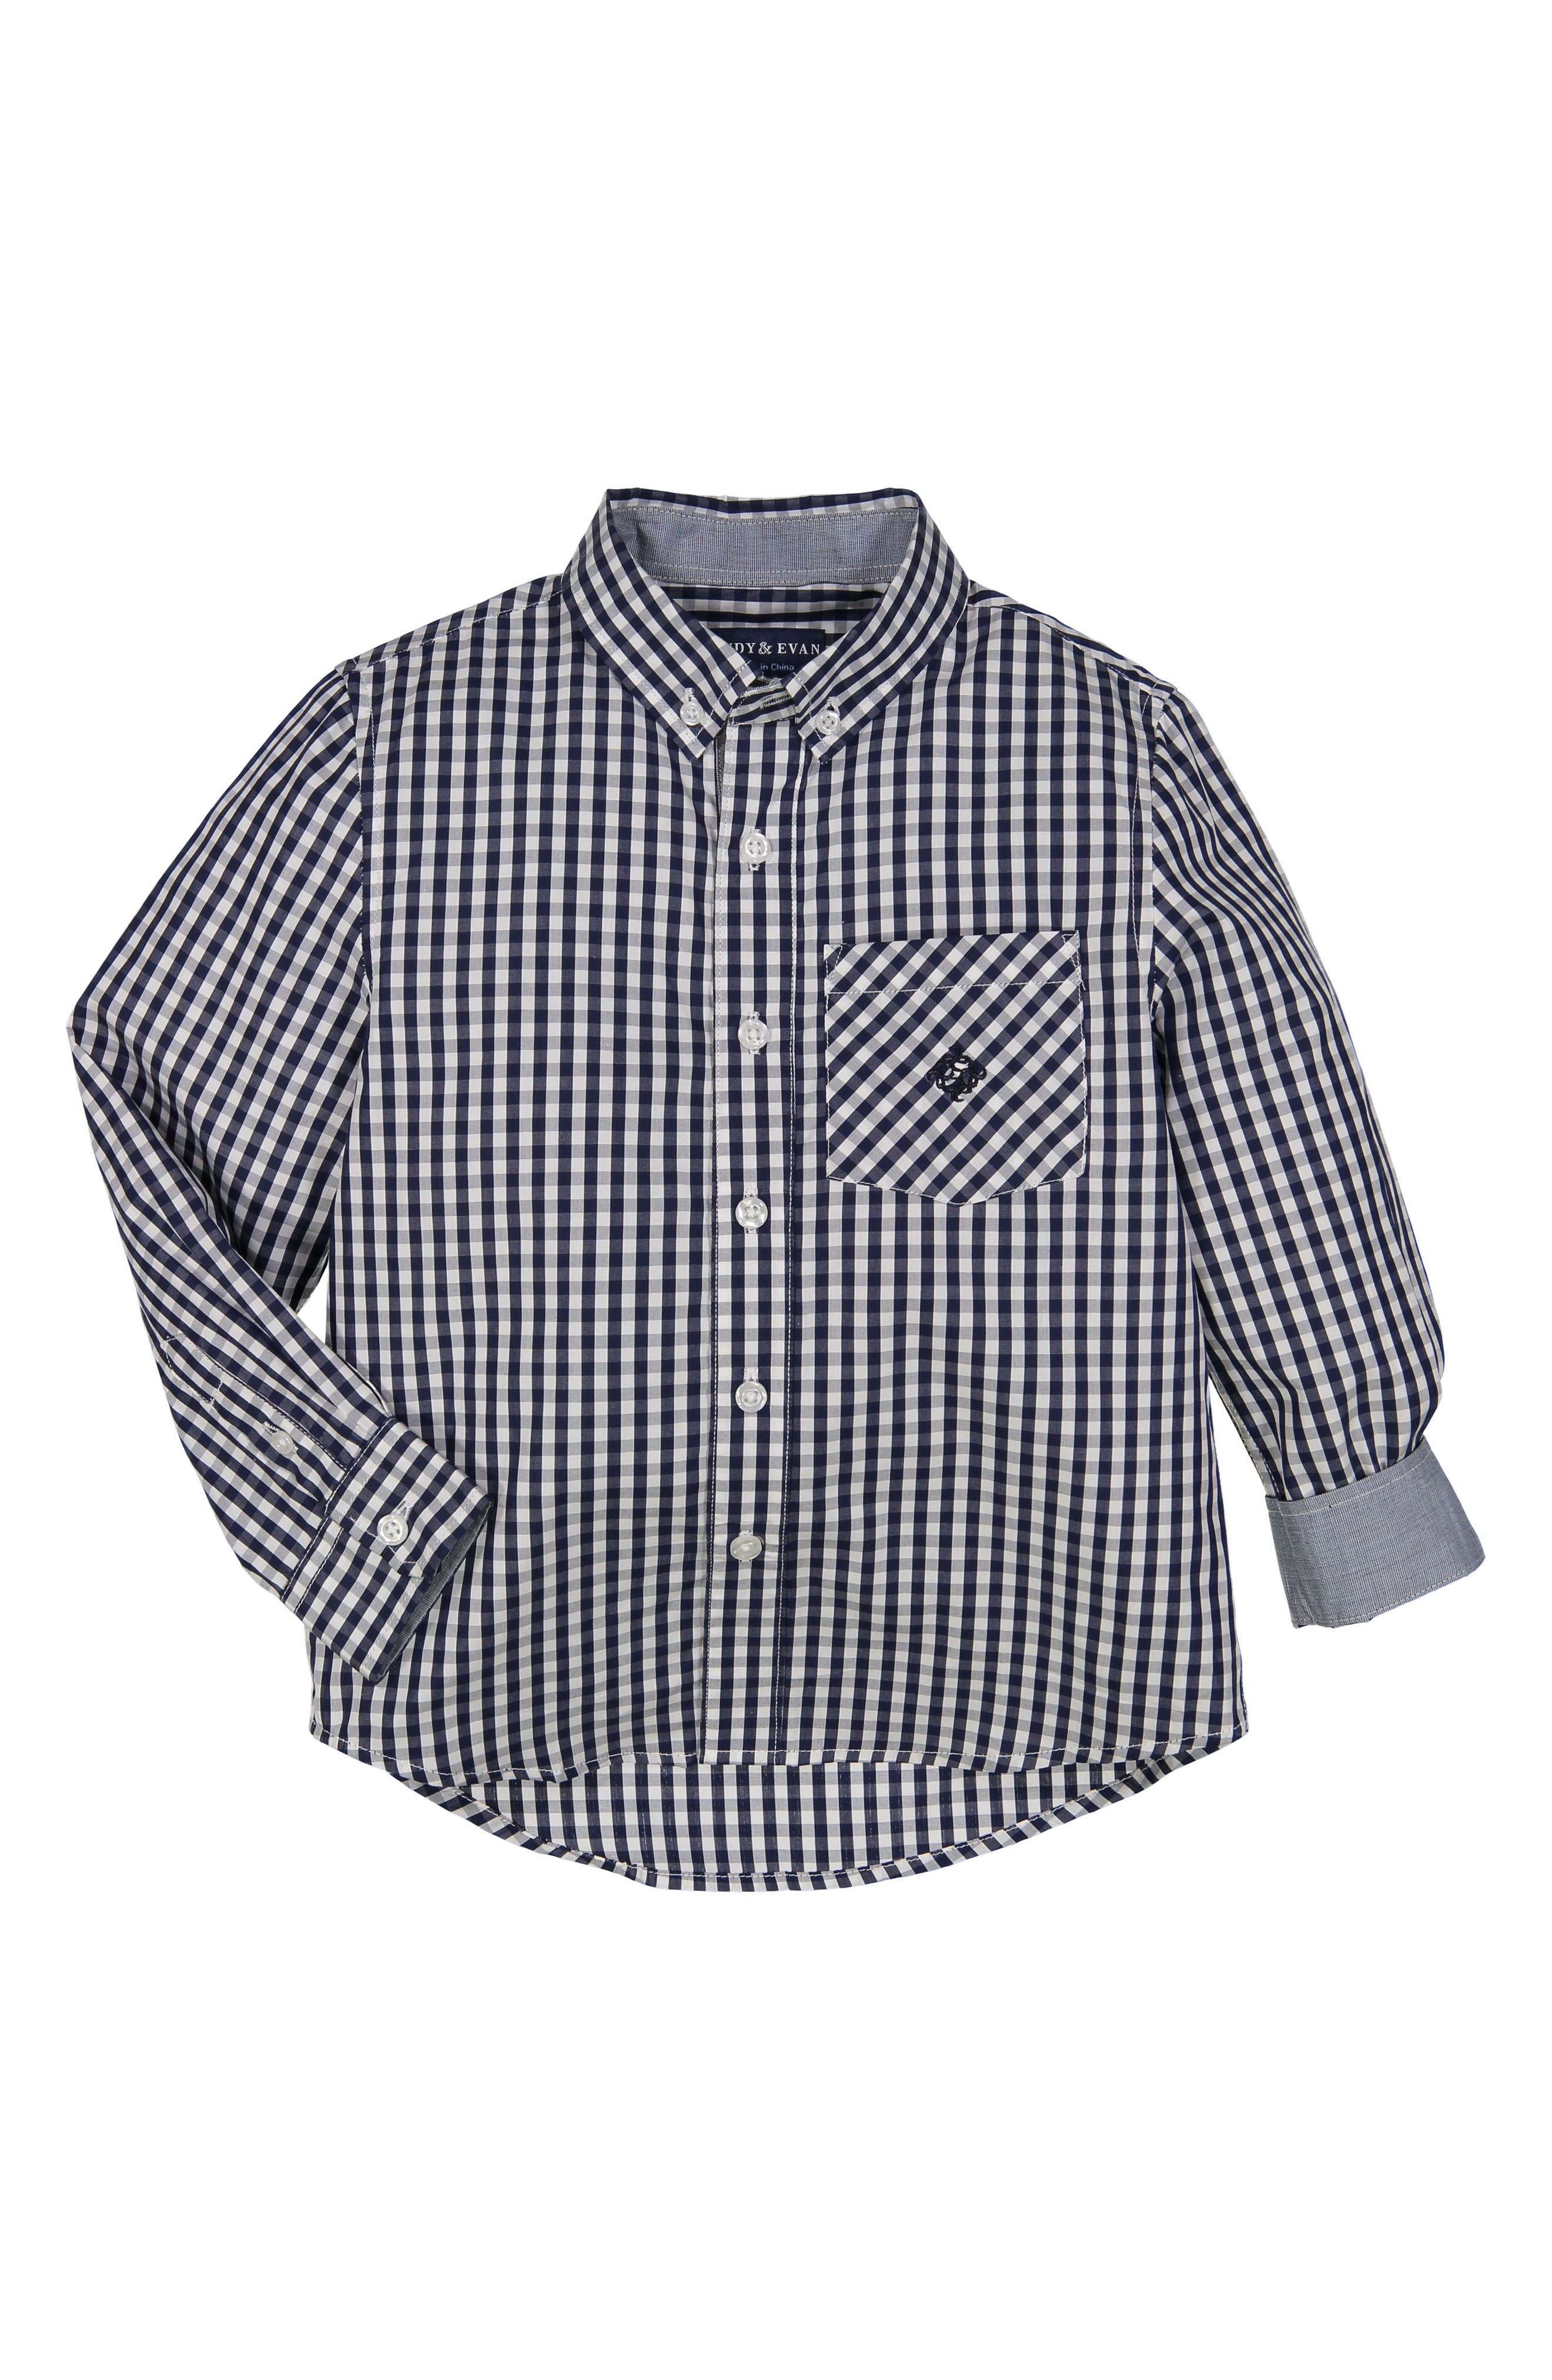 Gingham Check Woven Shirt,                         Main,                         color, 410